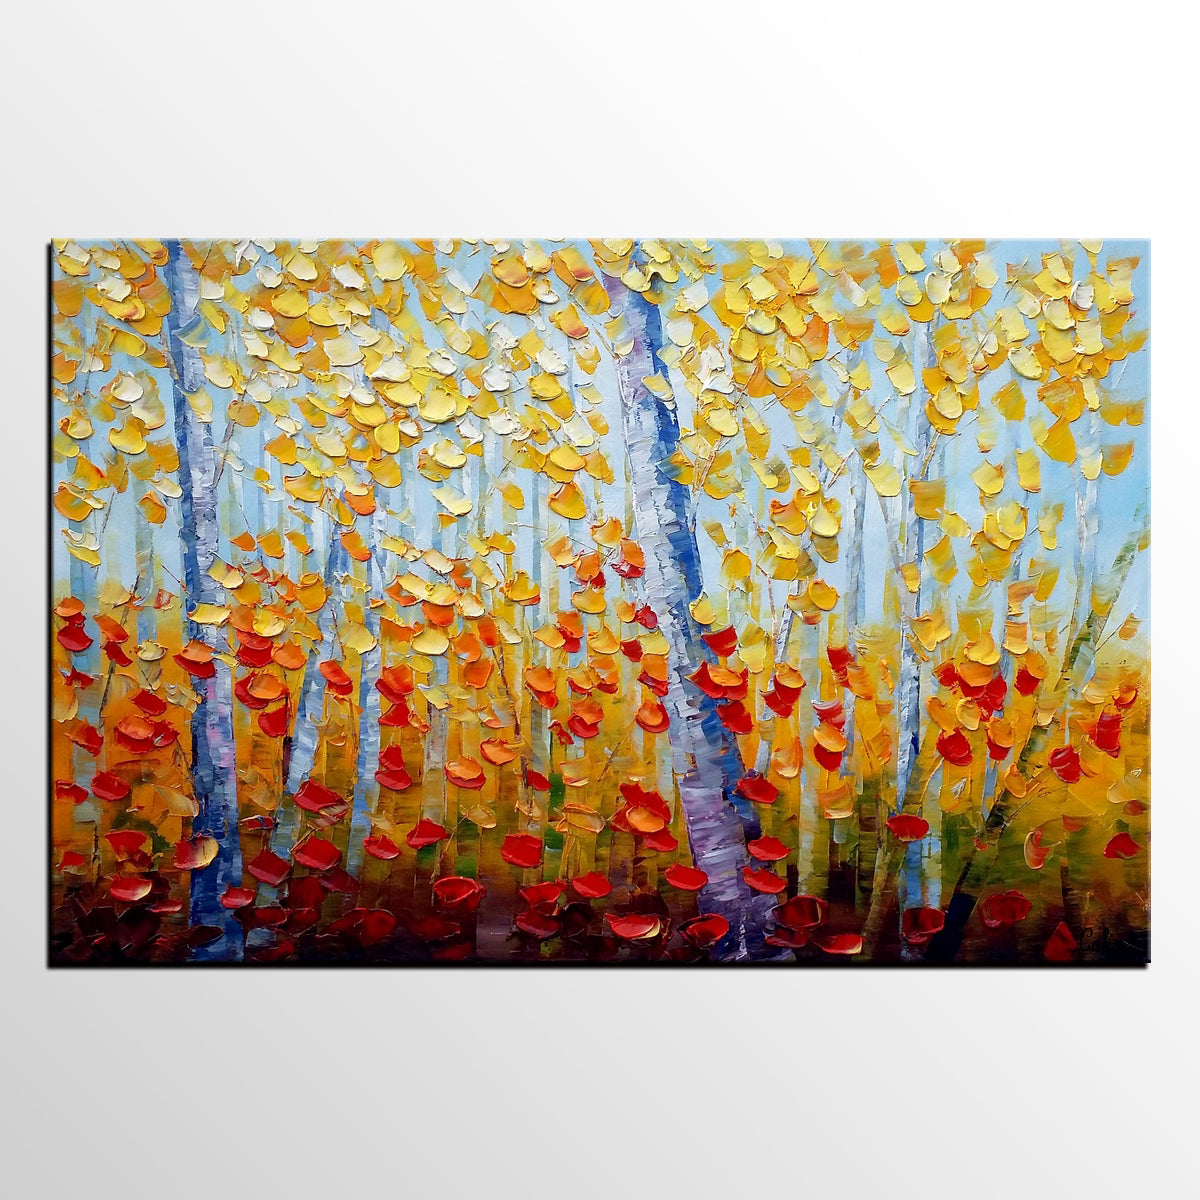 Autumn Tree Painting, Canvas Art, Wall Art, Canvas Painting, Oil Painting for Sale, Landscape Painting, Dining Room Wall Decor, Abstract Painting